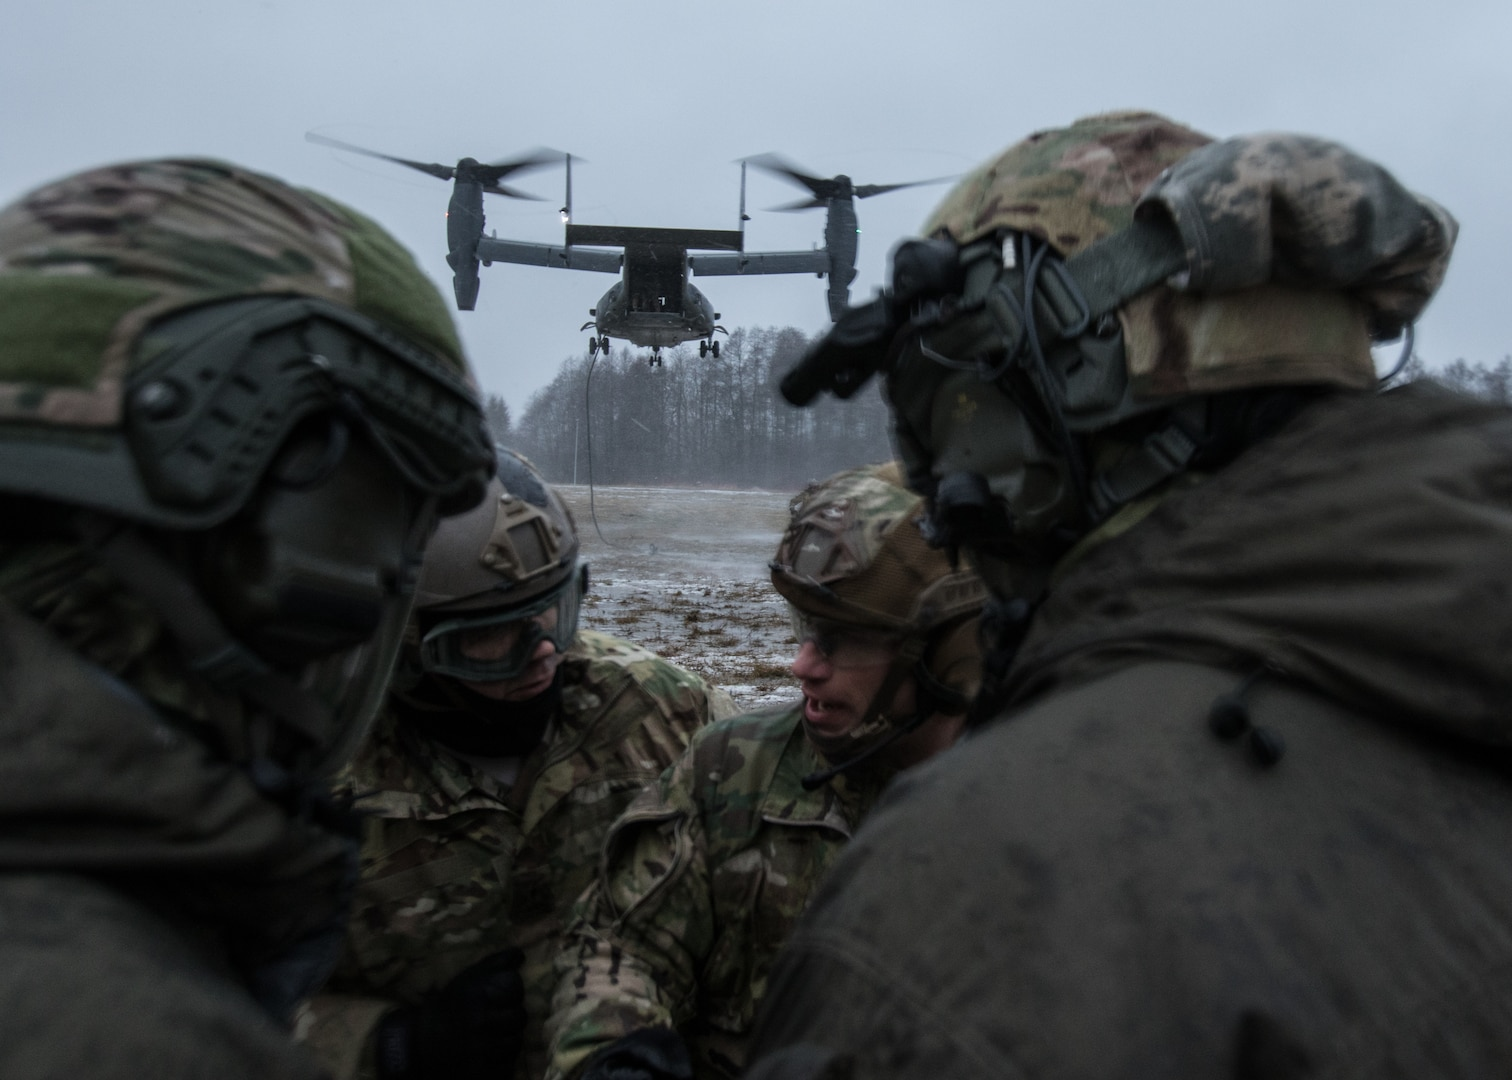 Estonian and U.S. special operations forces consolidate after fast rope training from U.S. Air Force CV-22 Osprey, assigned to 352nd Special Operations Wing, near Amari, Estonia, December 12, 2017 (U.S. Army/Matt Britton)